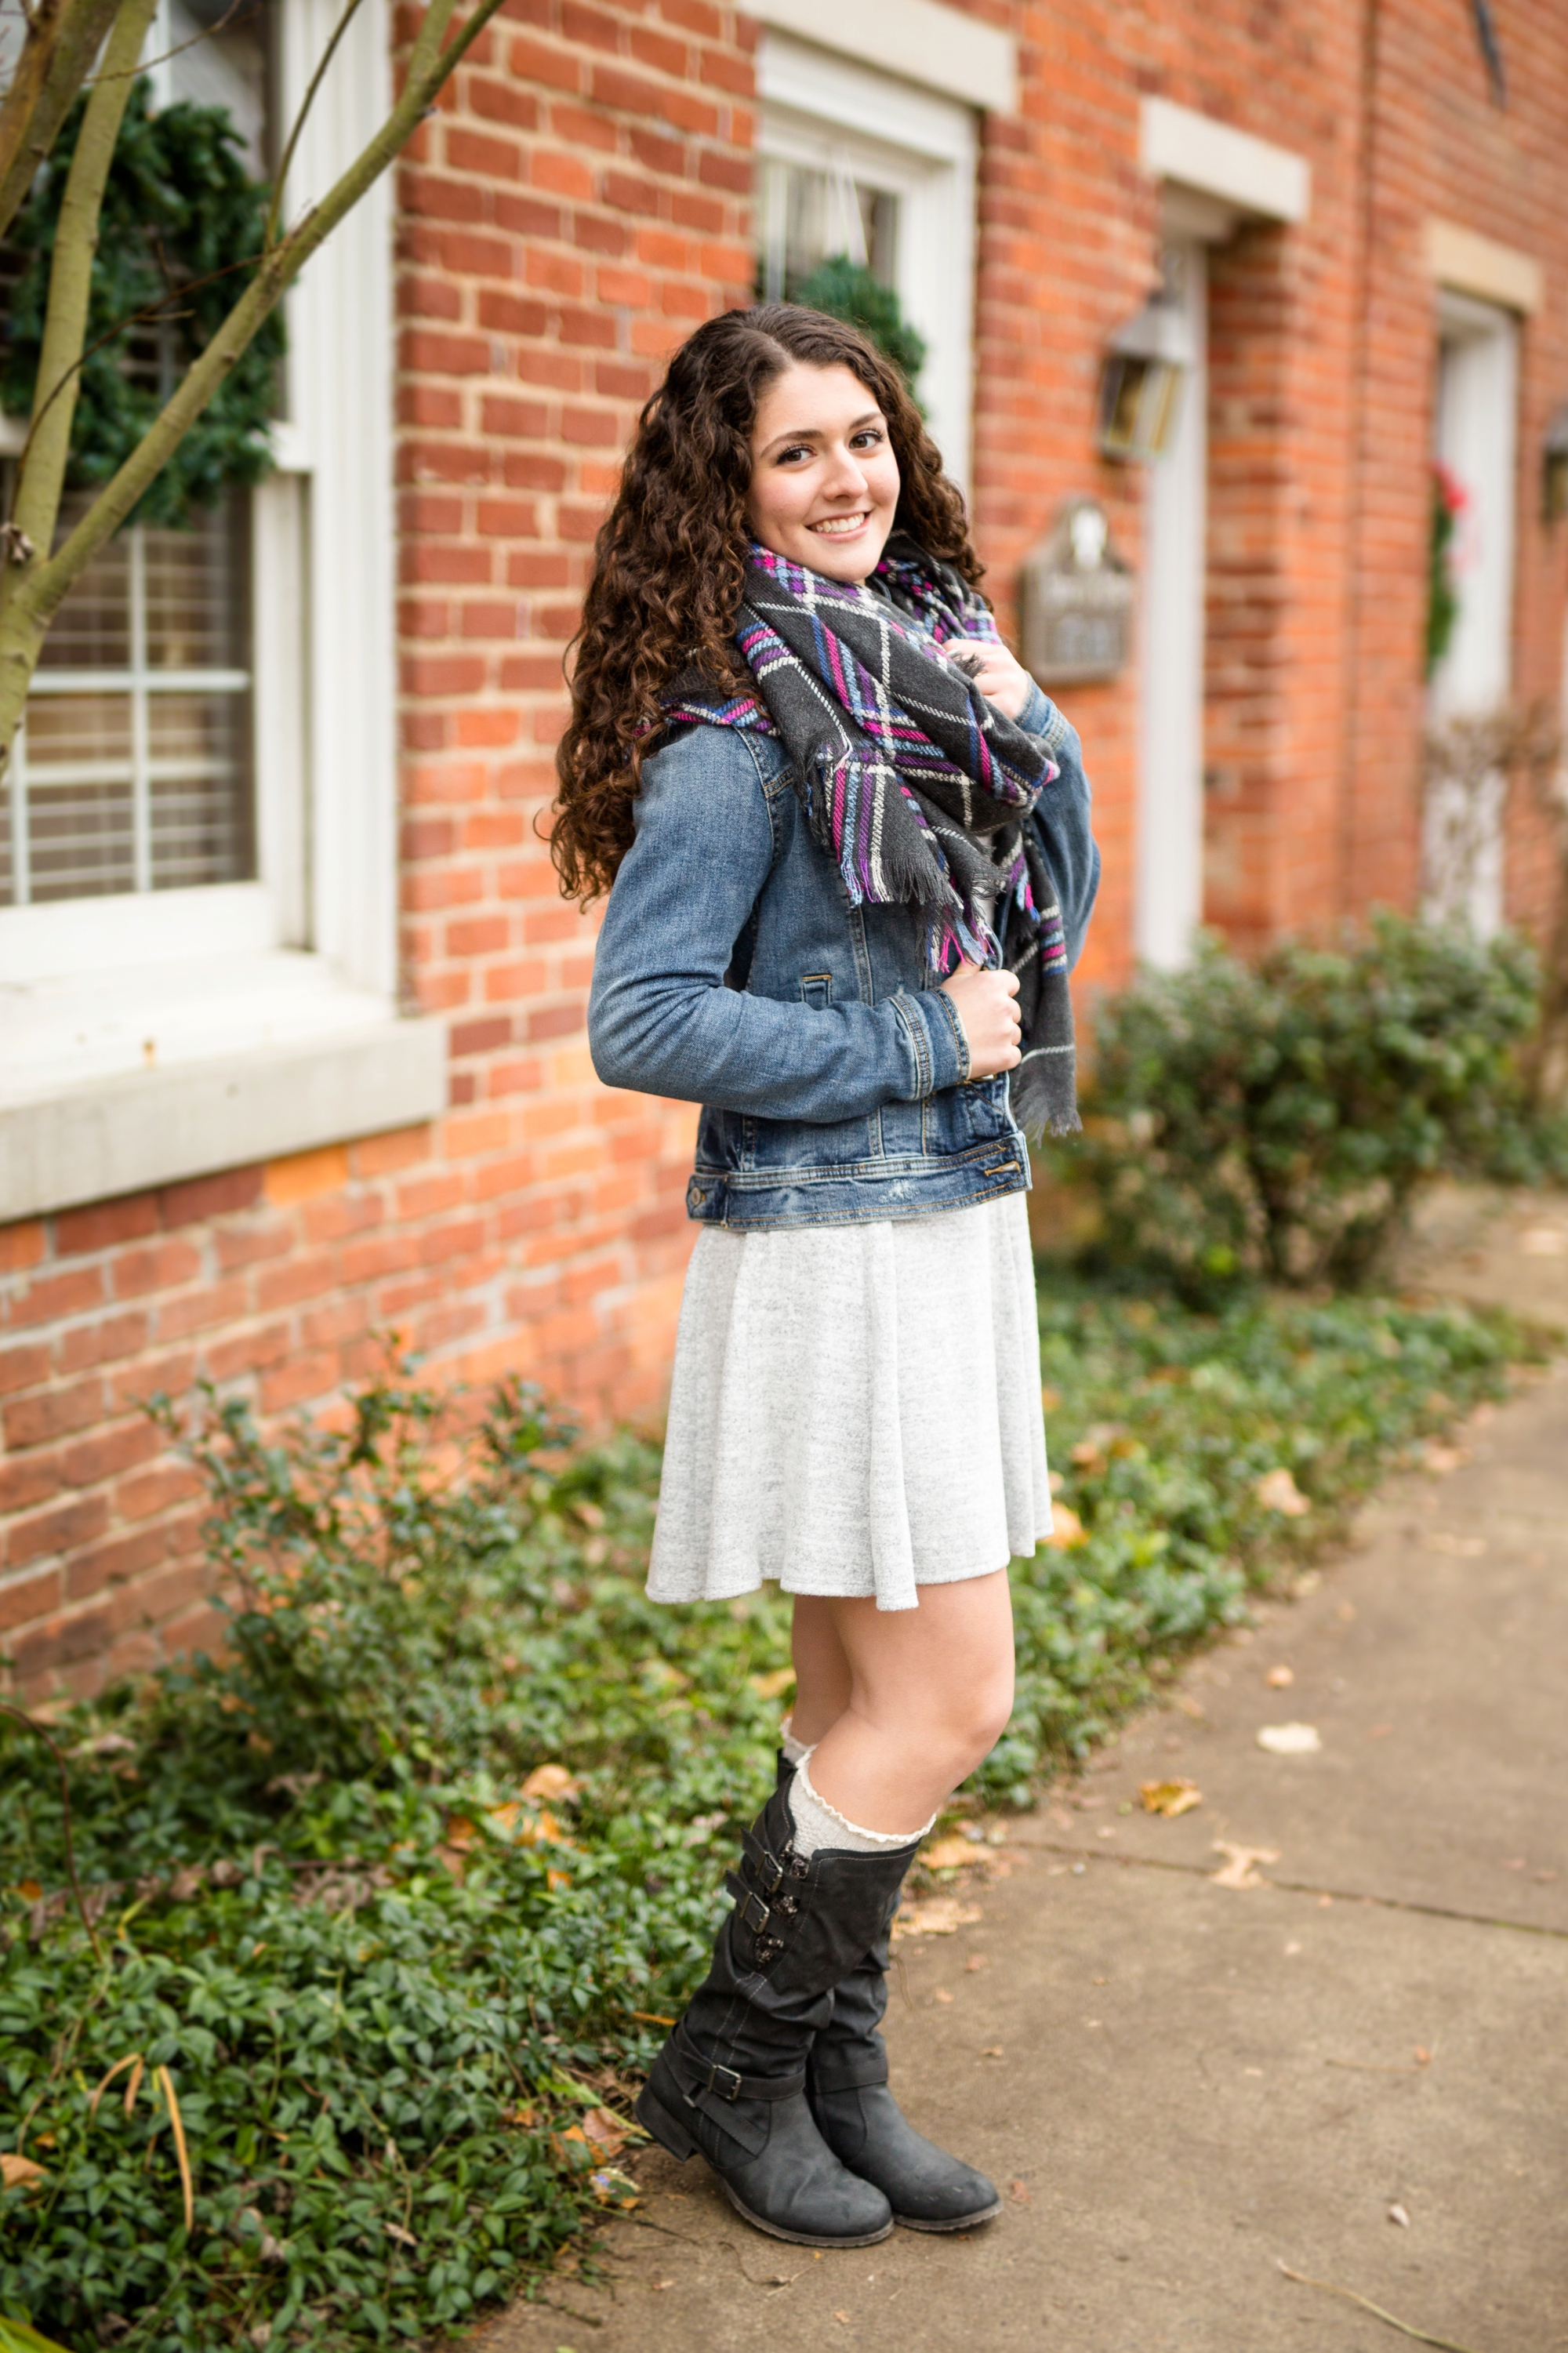 A blanket scarf and a jacket not only look adorable, but have you ever worn a blanket scarf?! They are SO WARM!